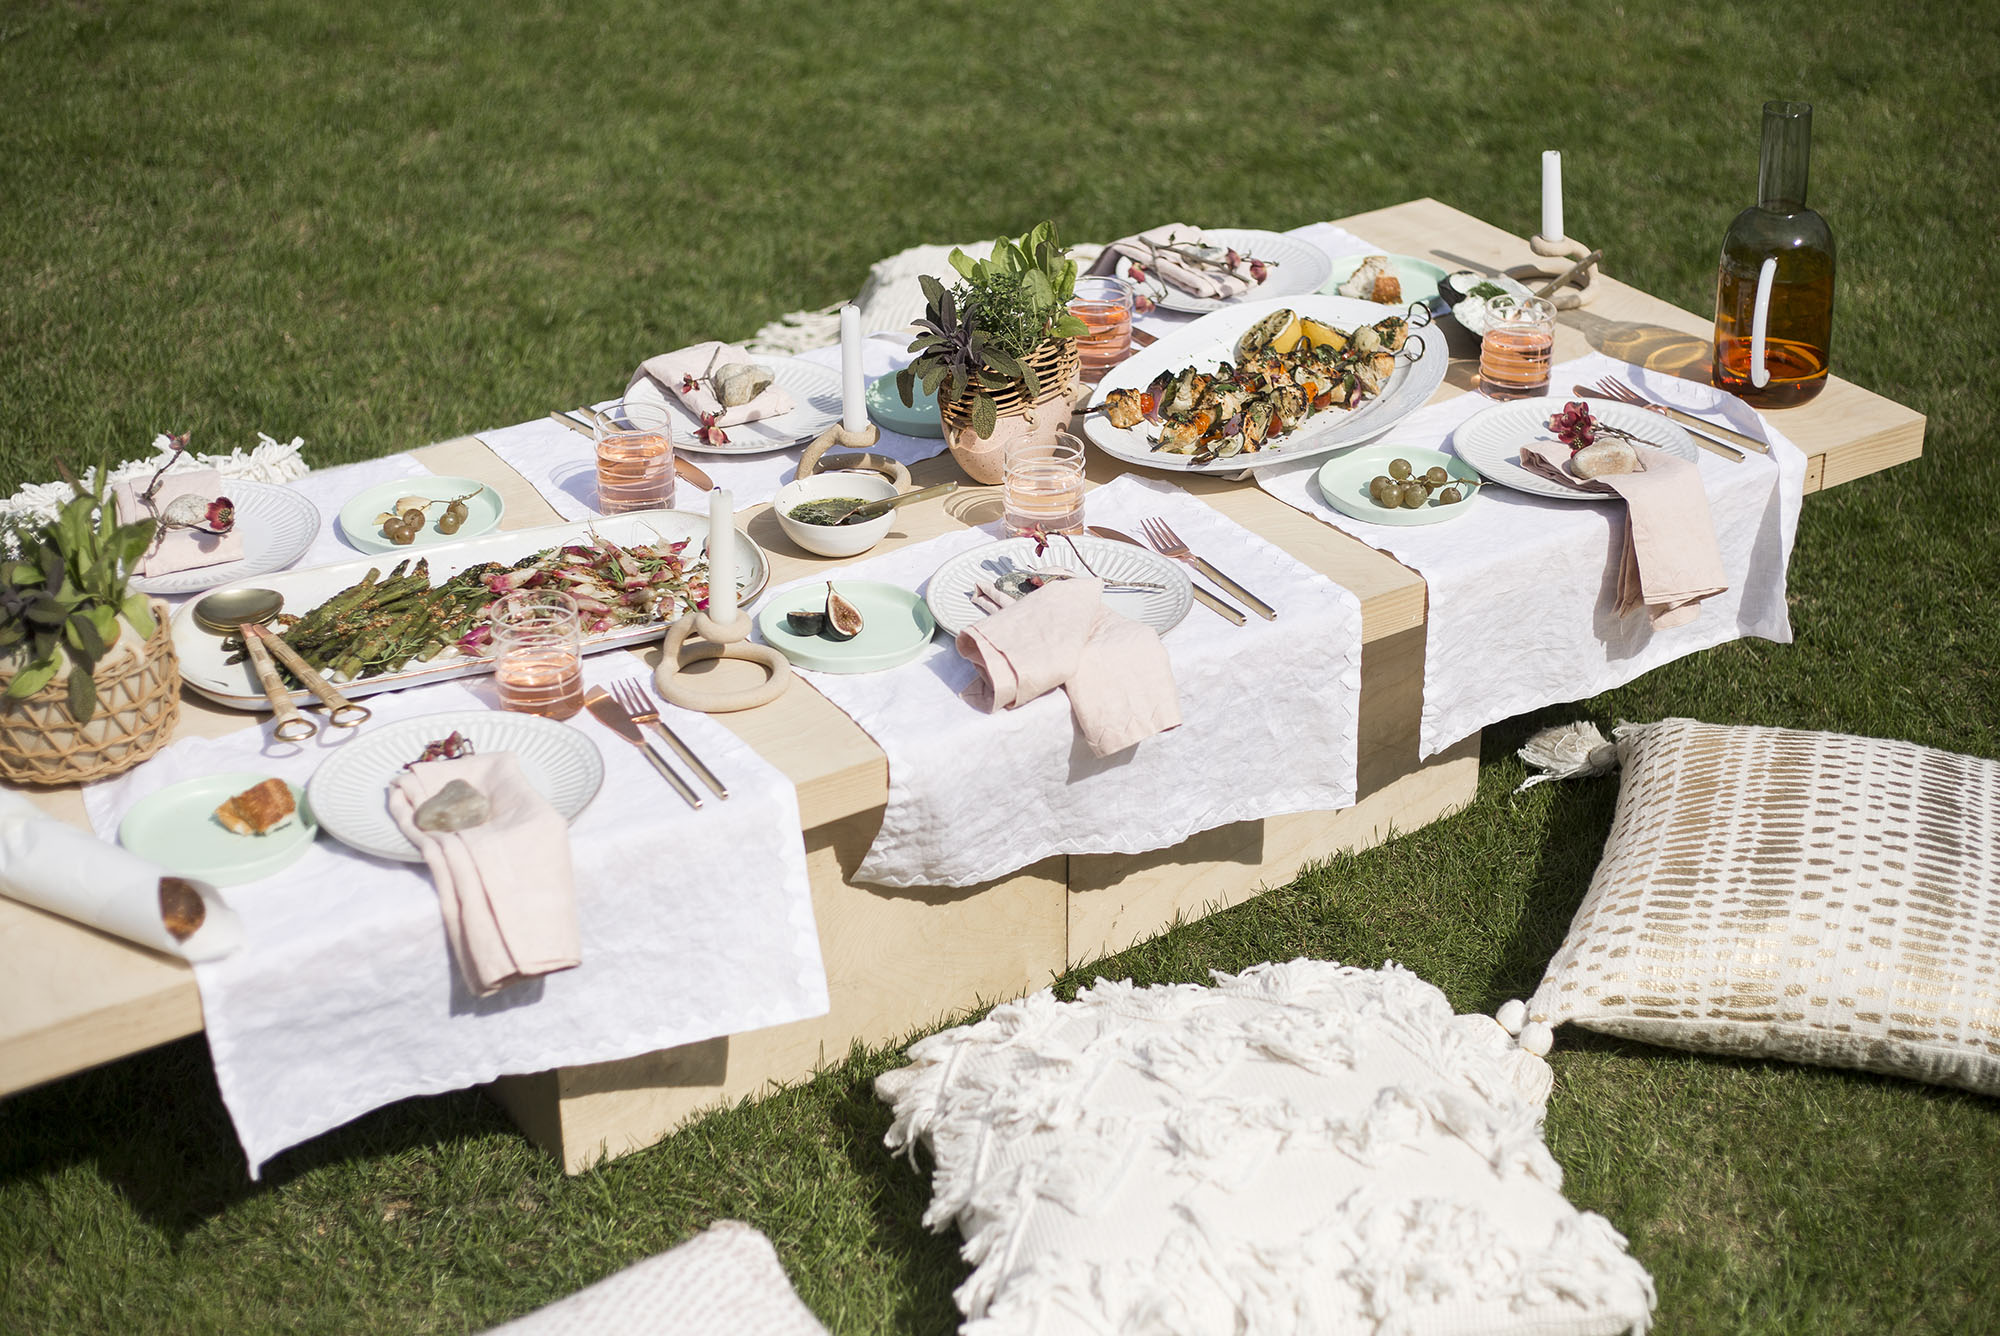 5 essentials for outdoor entertaining - 5 Essentials for Outdoor Entertaining